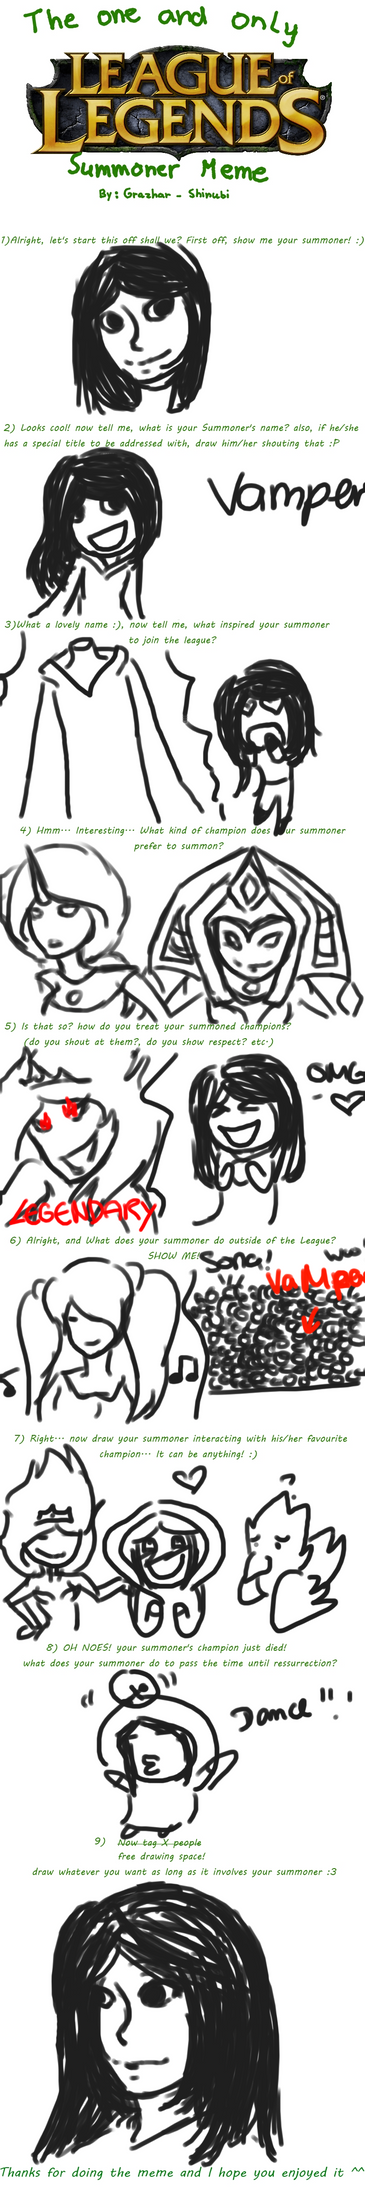 Vamper is a meme by LeaShakira